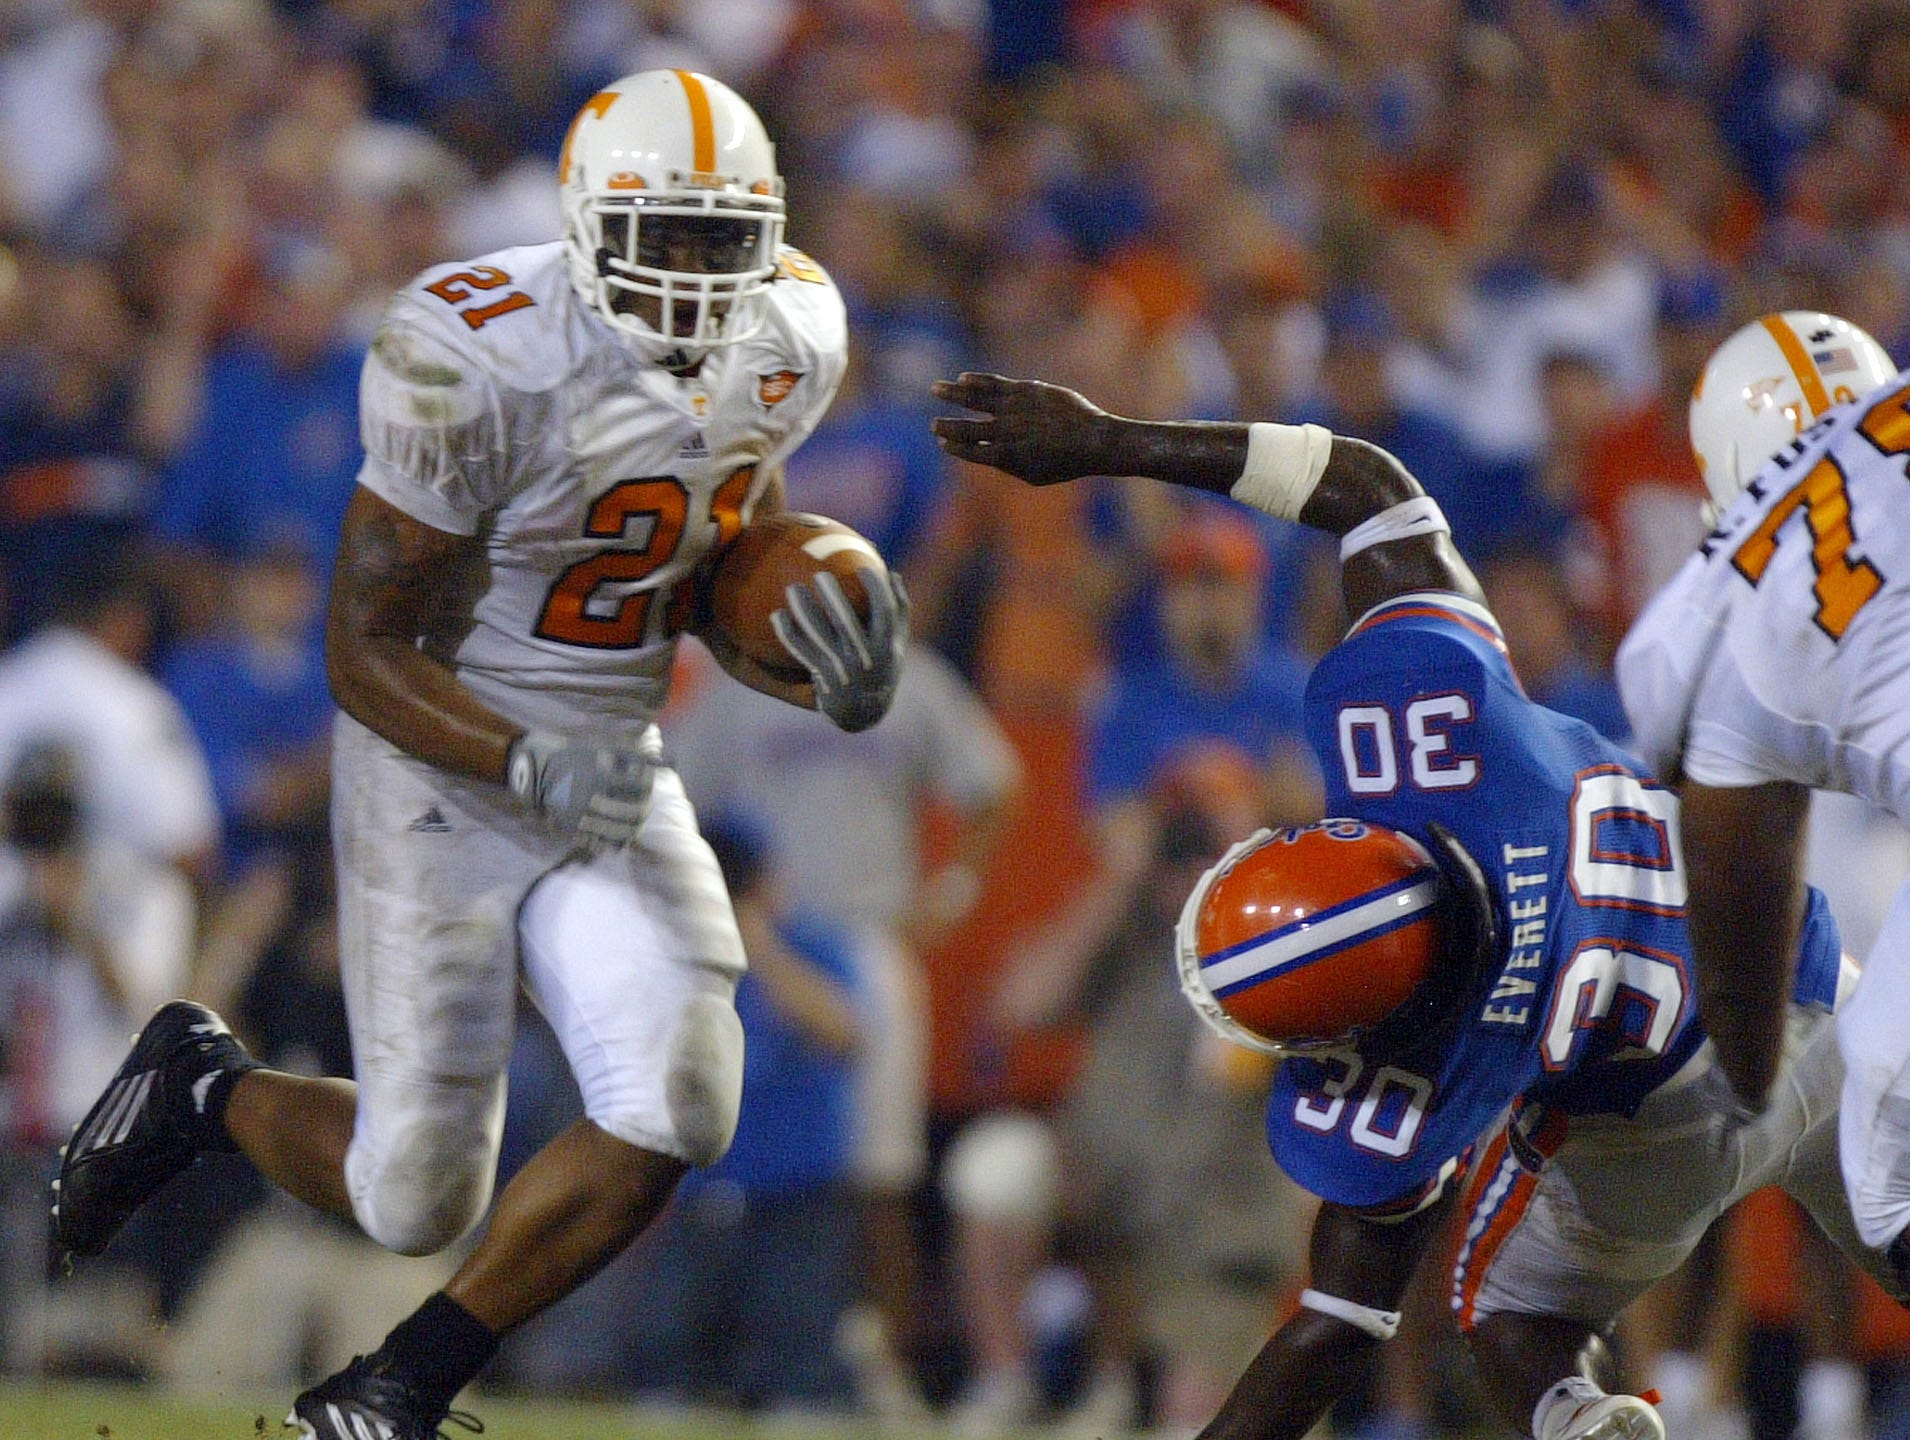 Tennessee's Gerald Riggs Jr. gets past  Florida's  Earl Everett on Saturday in Gainesville.